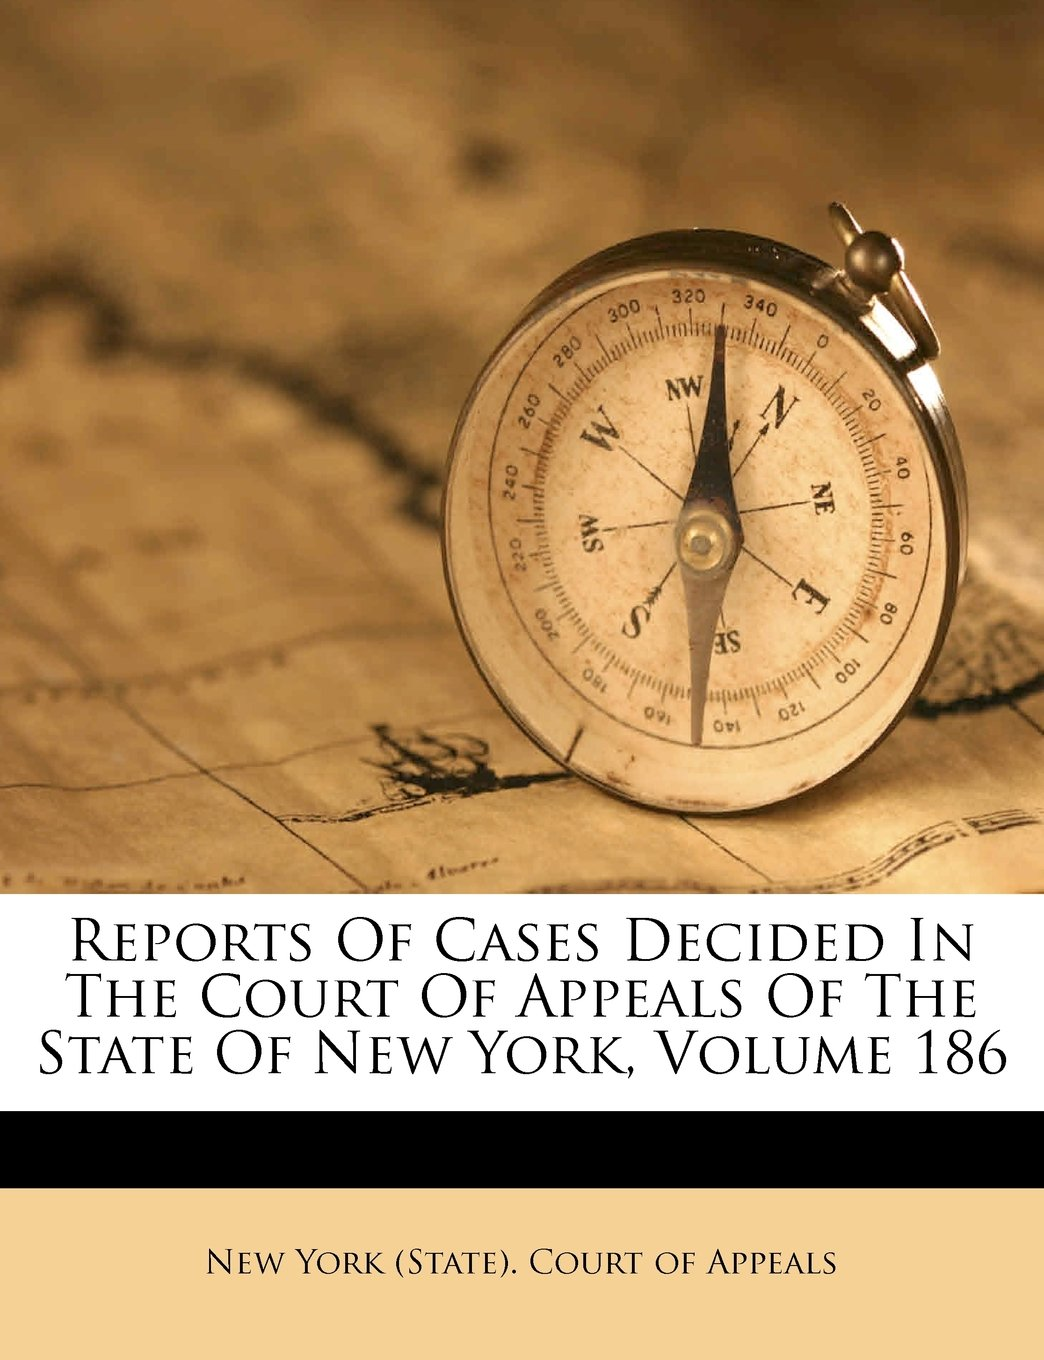 Download Reports Of Cases Decided In The Court Of Appeals Of The State Of New York, Volume 186 ebook